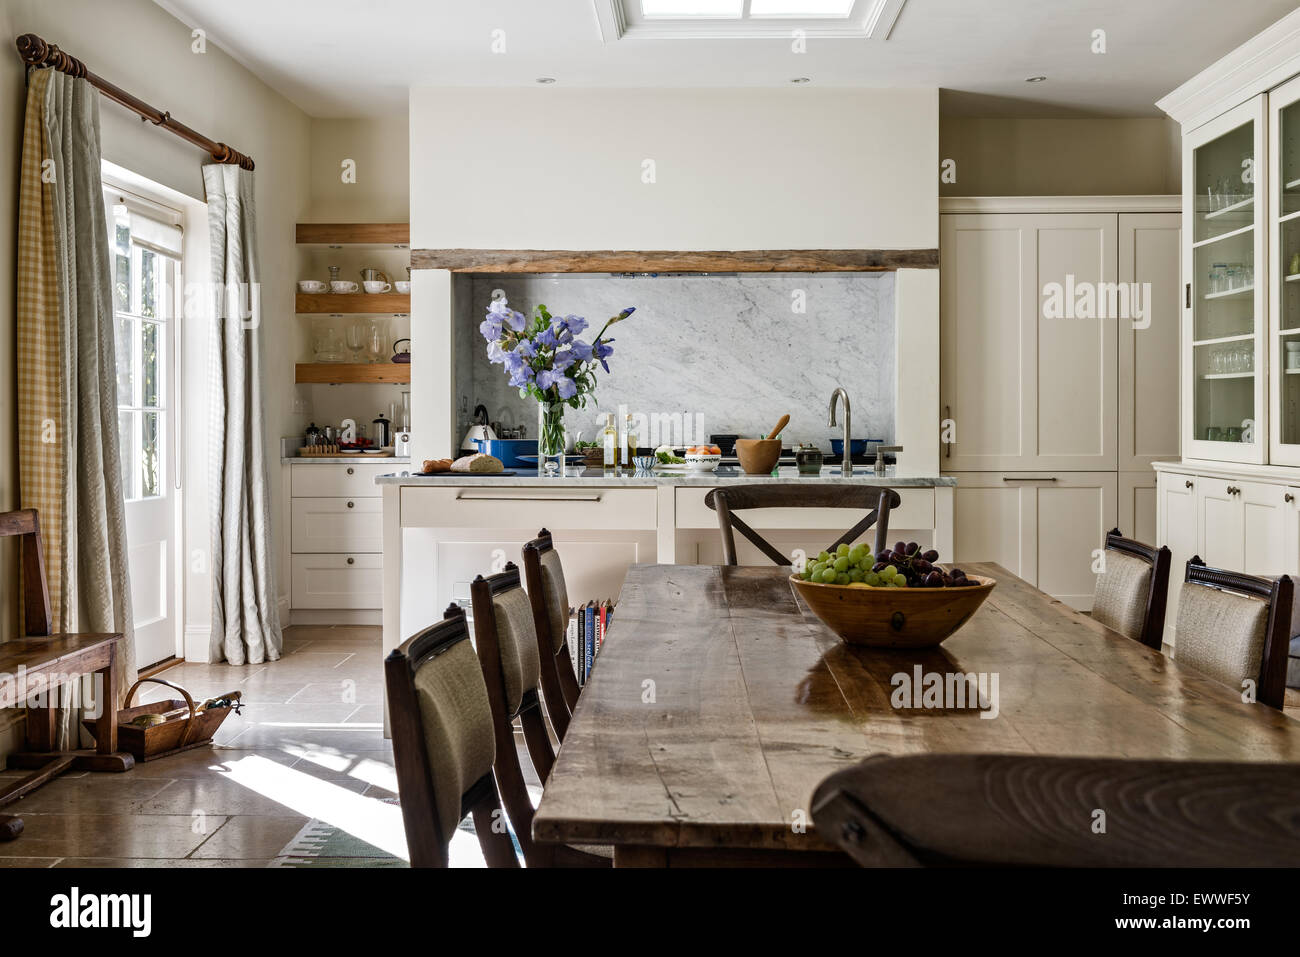 Limestone Flooring Kitchen Antique Dining Table With Chairs In Open Plan Kitchen Dining Room